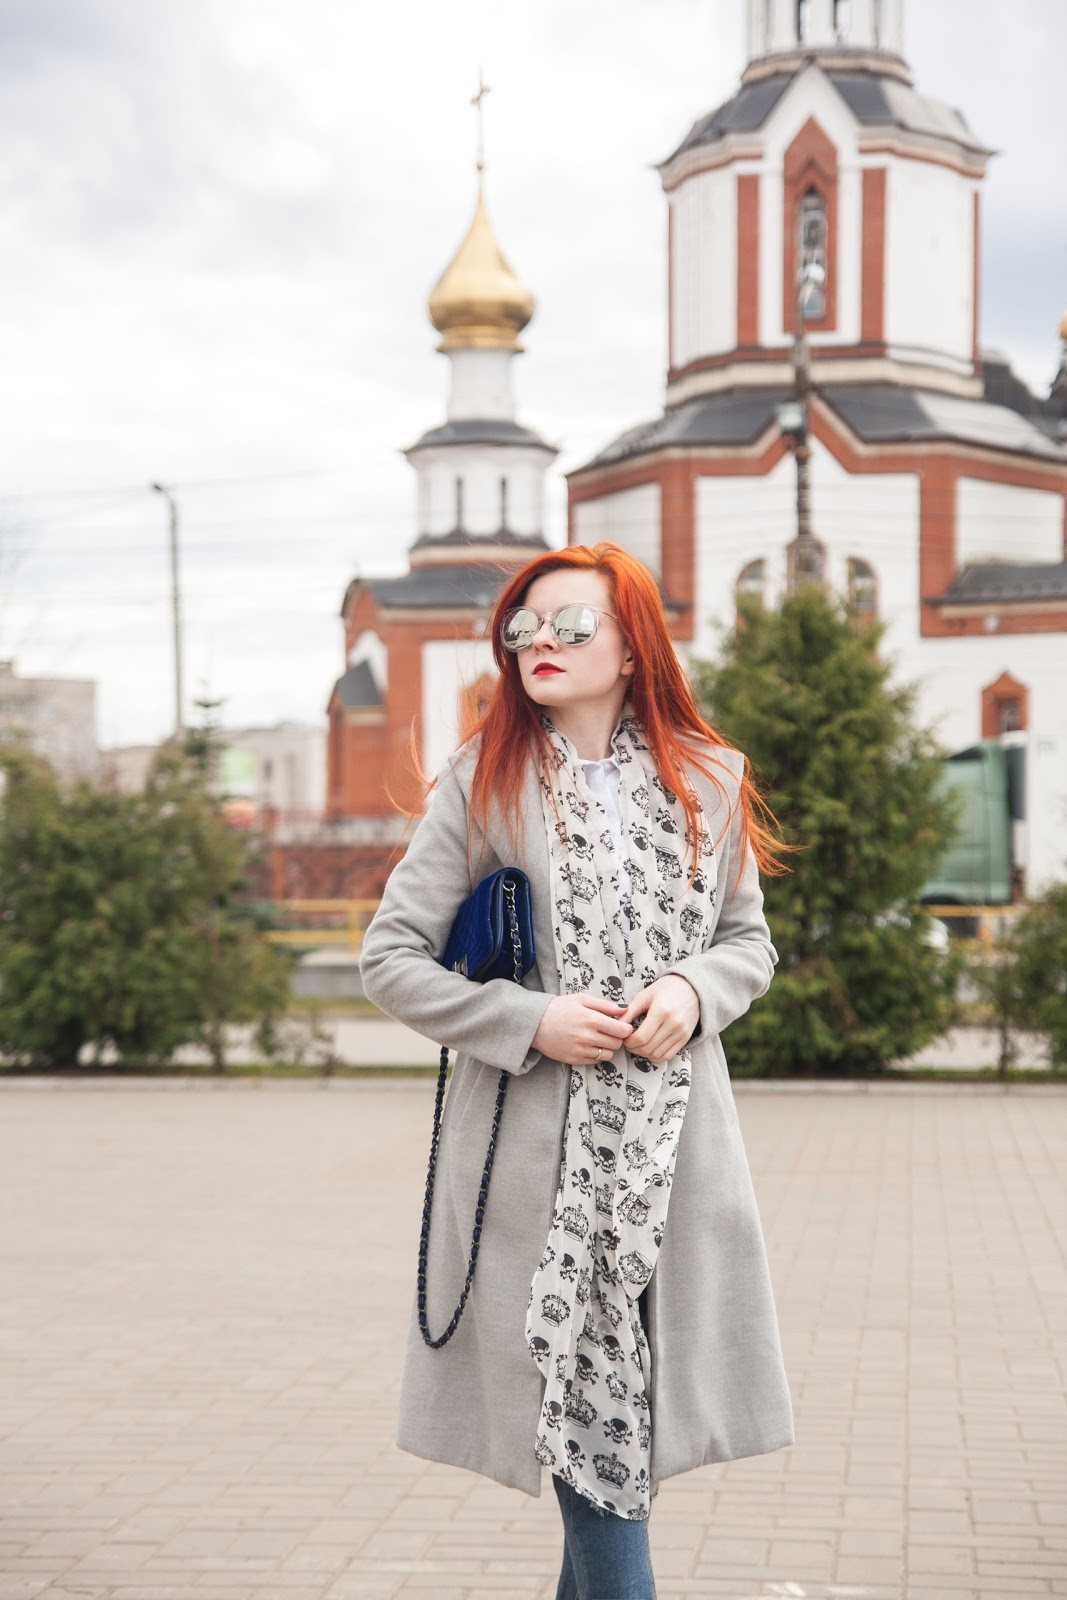 http://reckless-diary.blogspot.ru/2016/04/blog-post_26.html